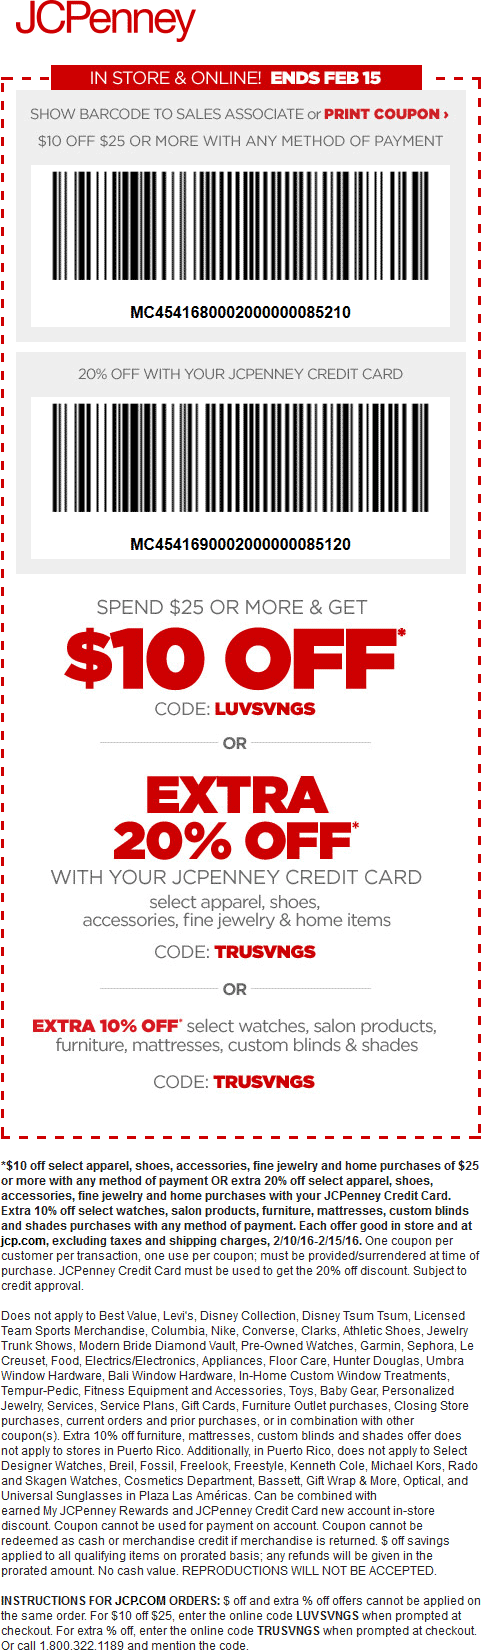 JCPenney Coupon August 2017 $10 off $25 at JCPenney, or online via promo code LUVSVNGS